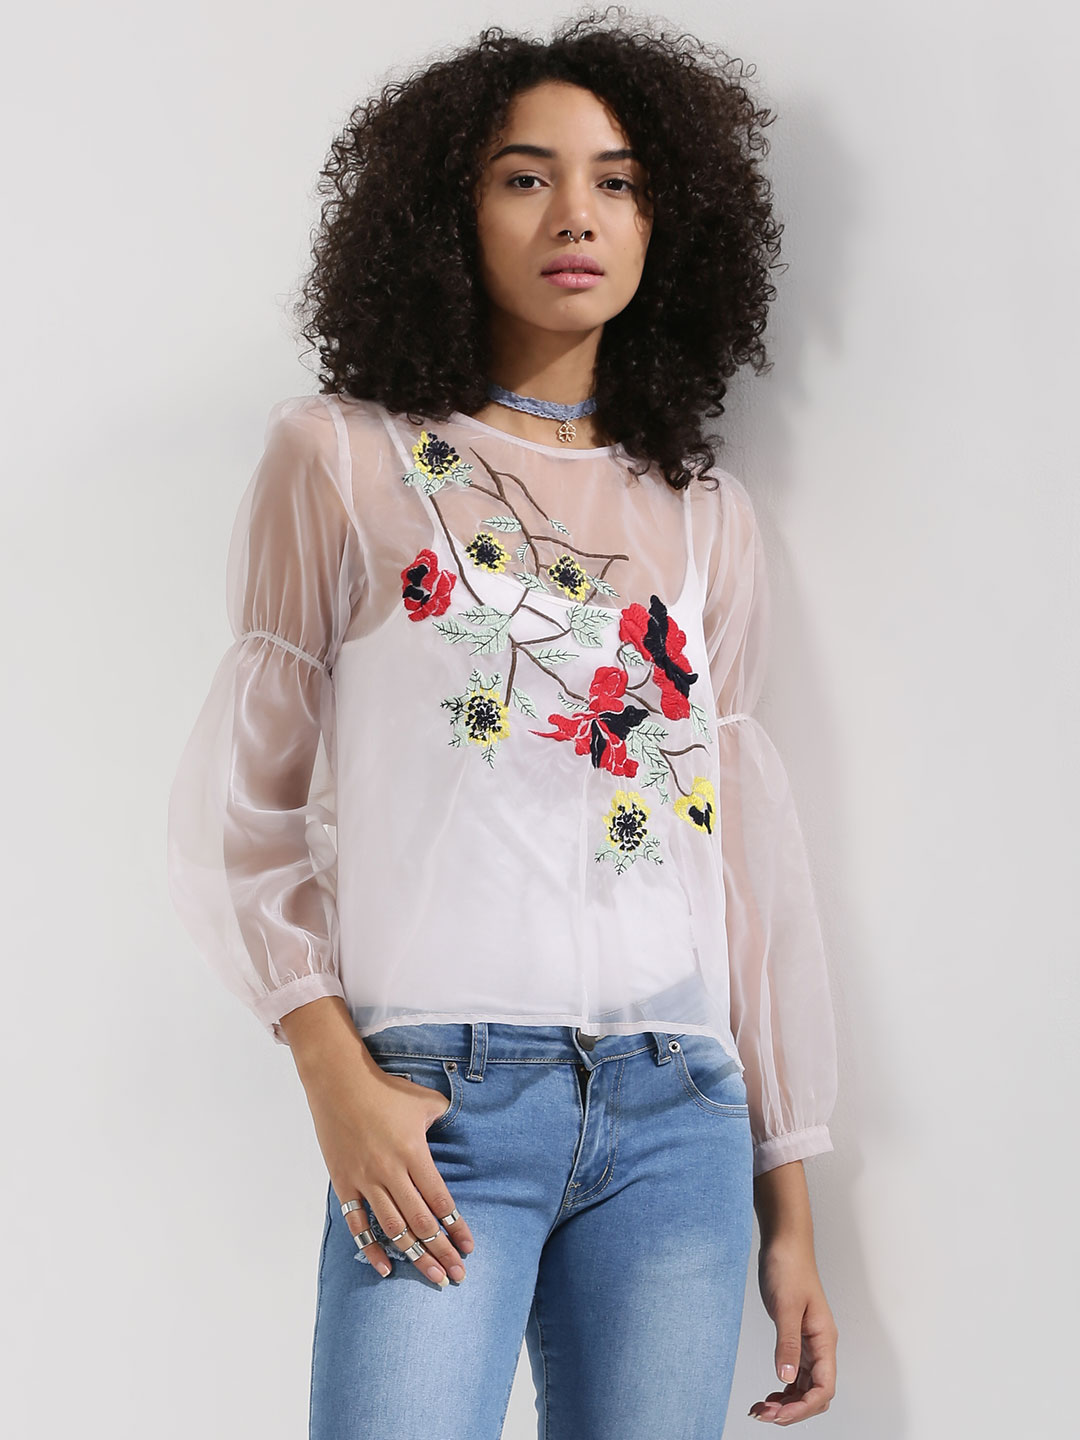 Rena Love Pink Fit & Flare Sleeve Sheer Top With Embroidery Detail 1